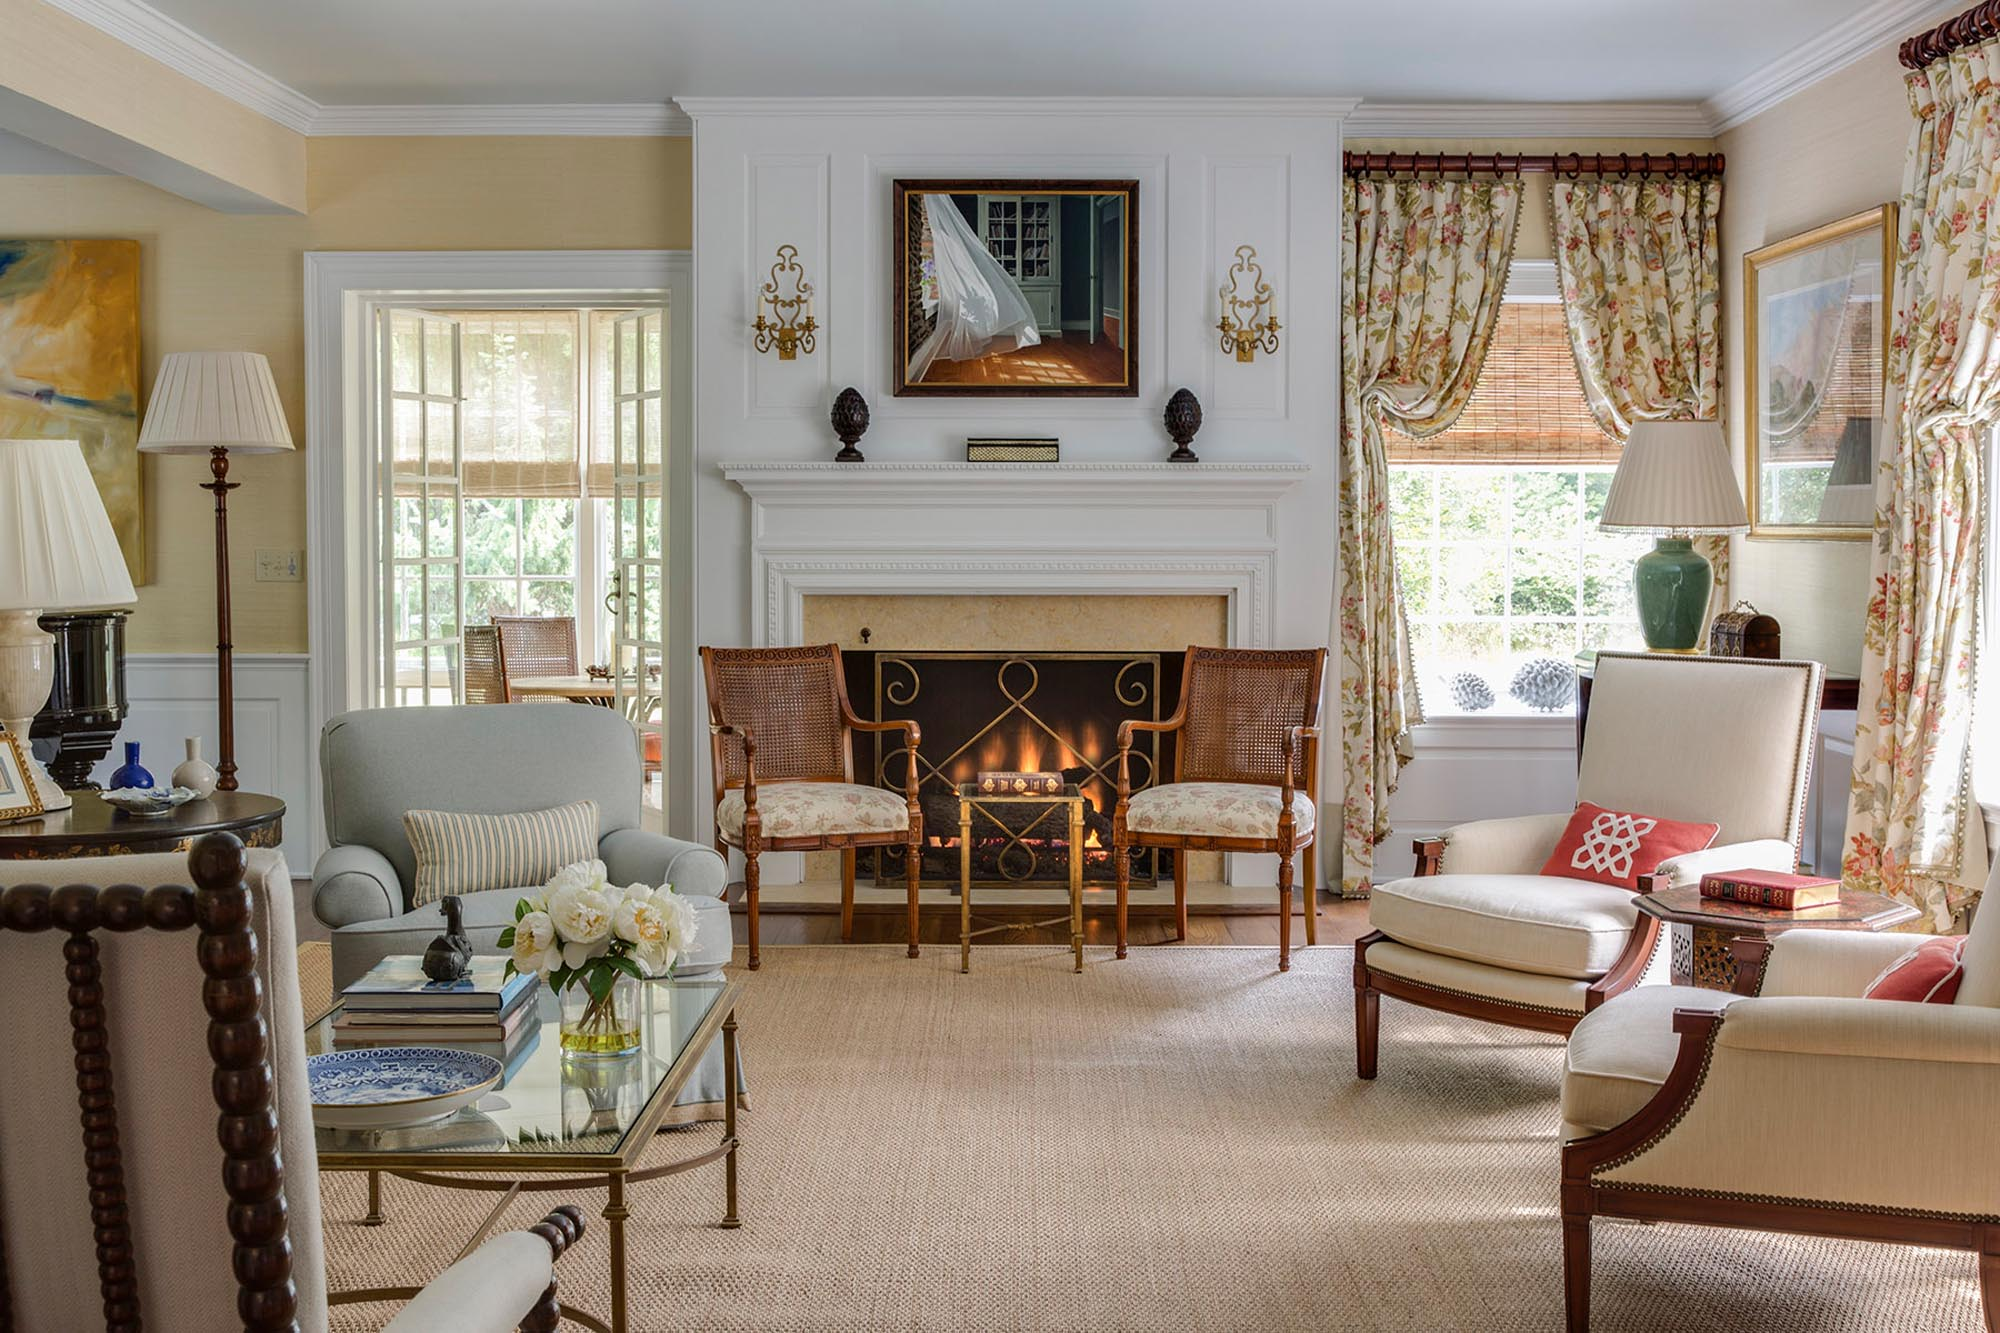 Warm living room with printed curtains and fireplace